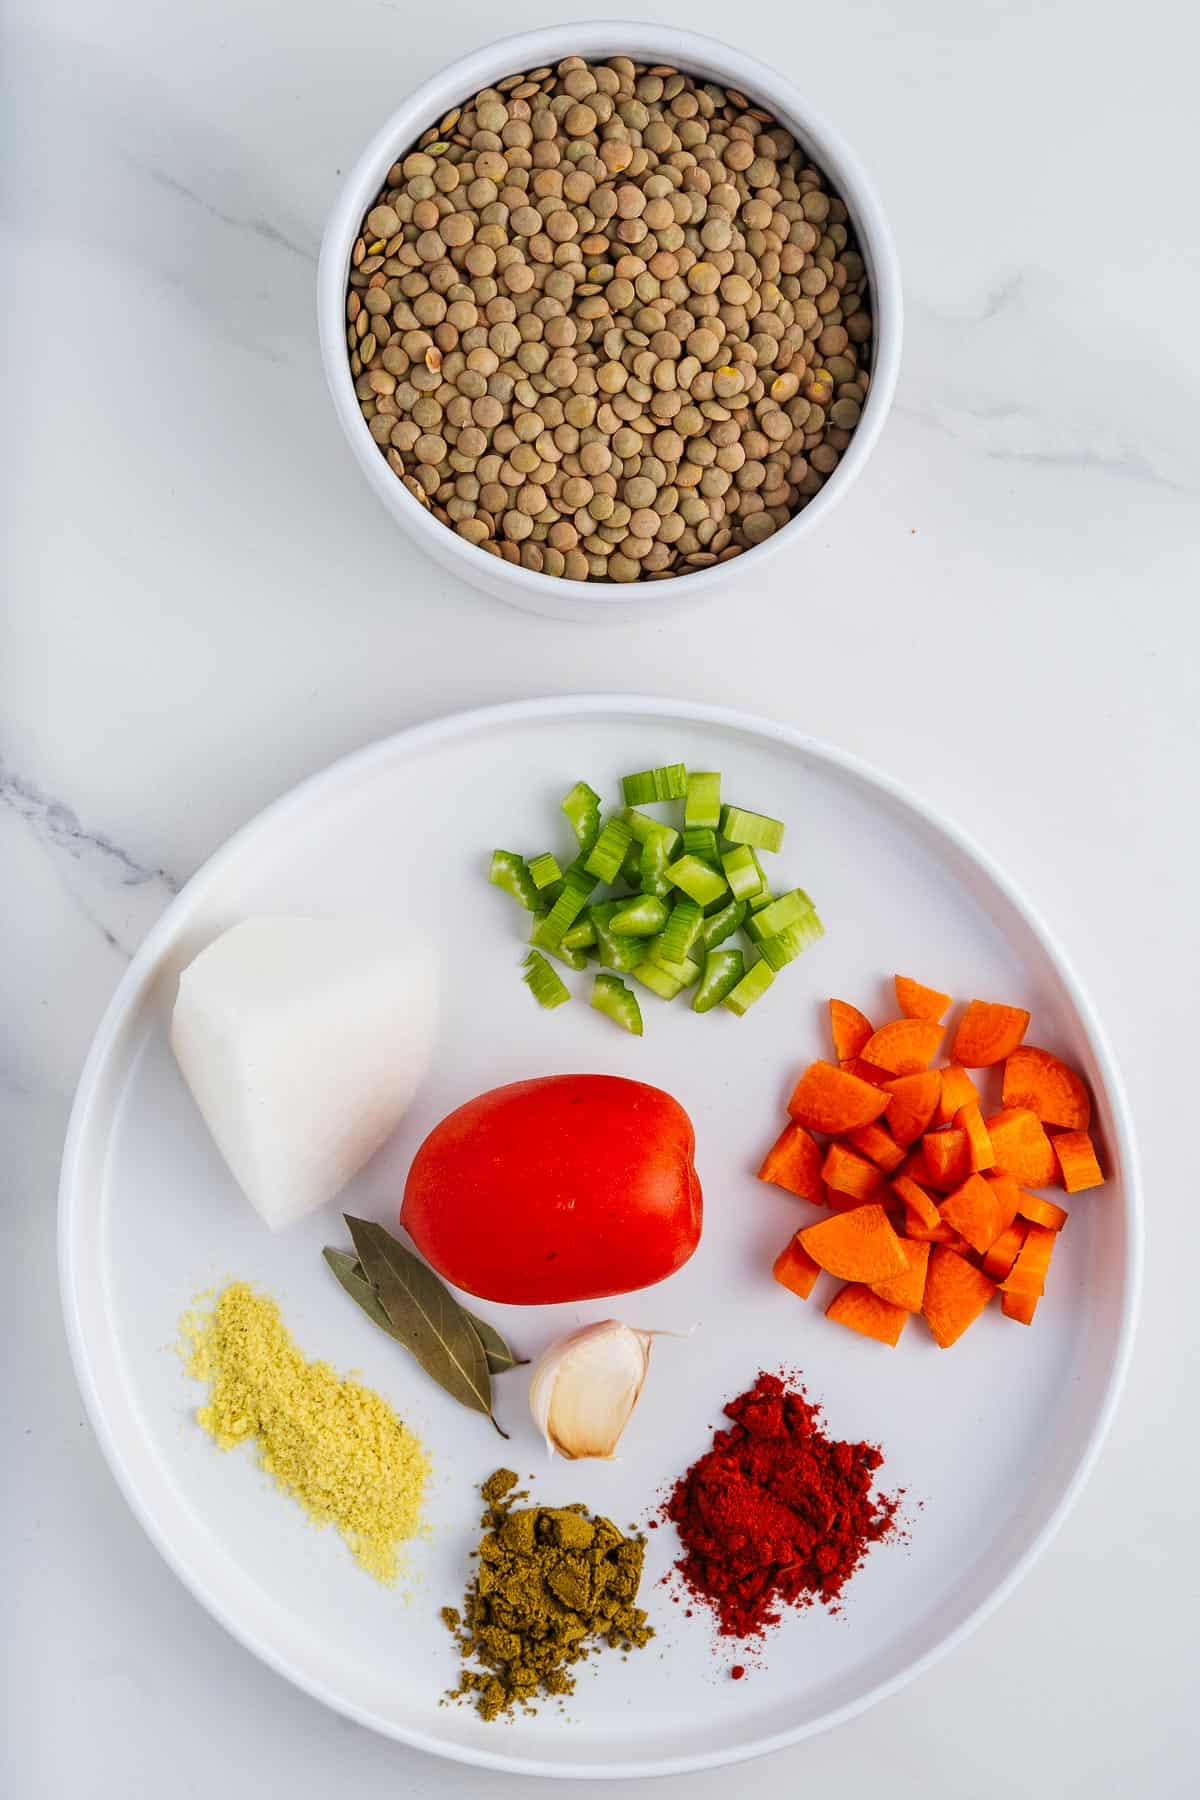 Tomatoes, Garlic, Onions, Spices, Lentils, Celery, and Carrots